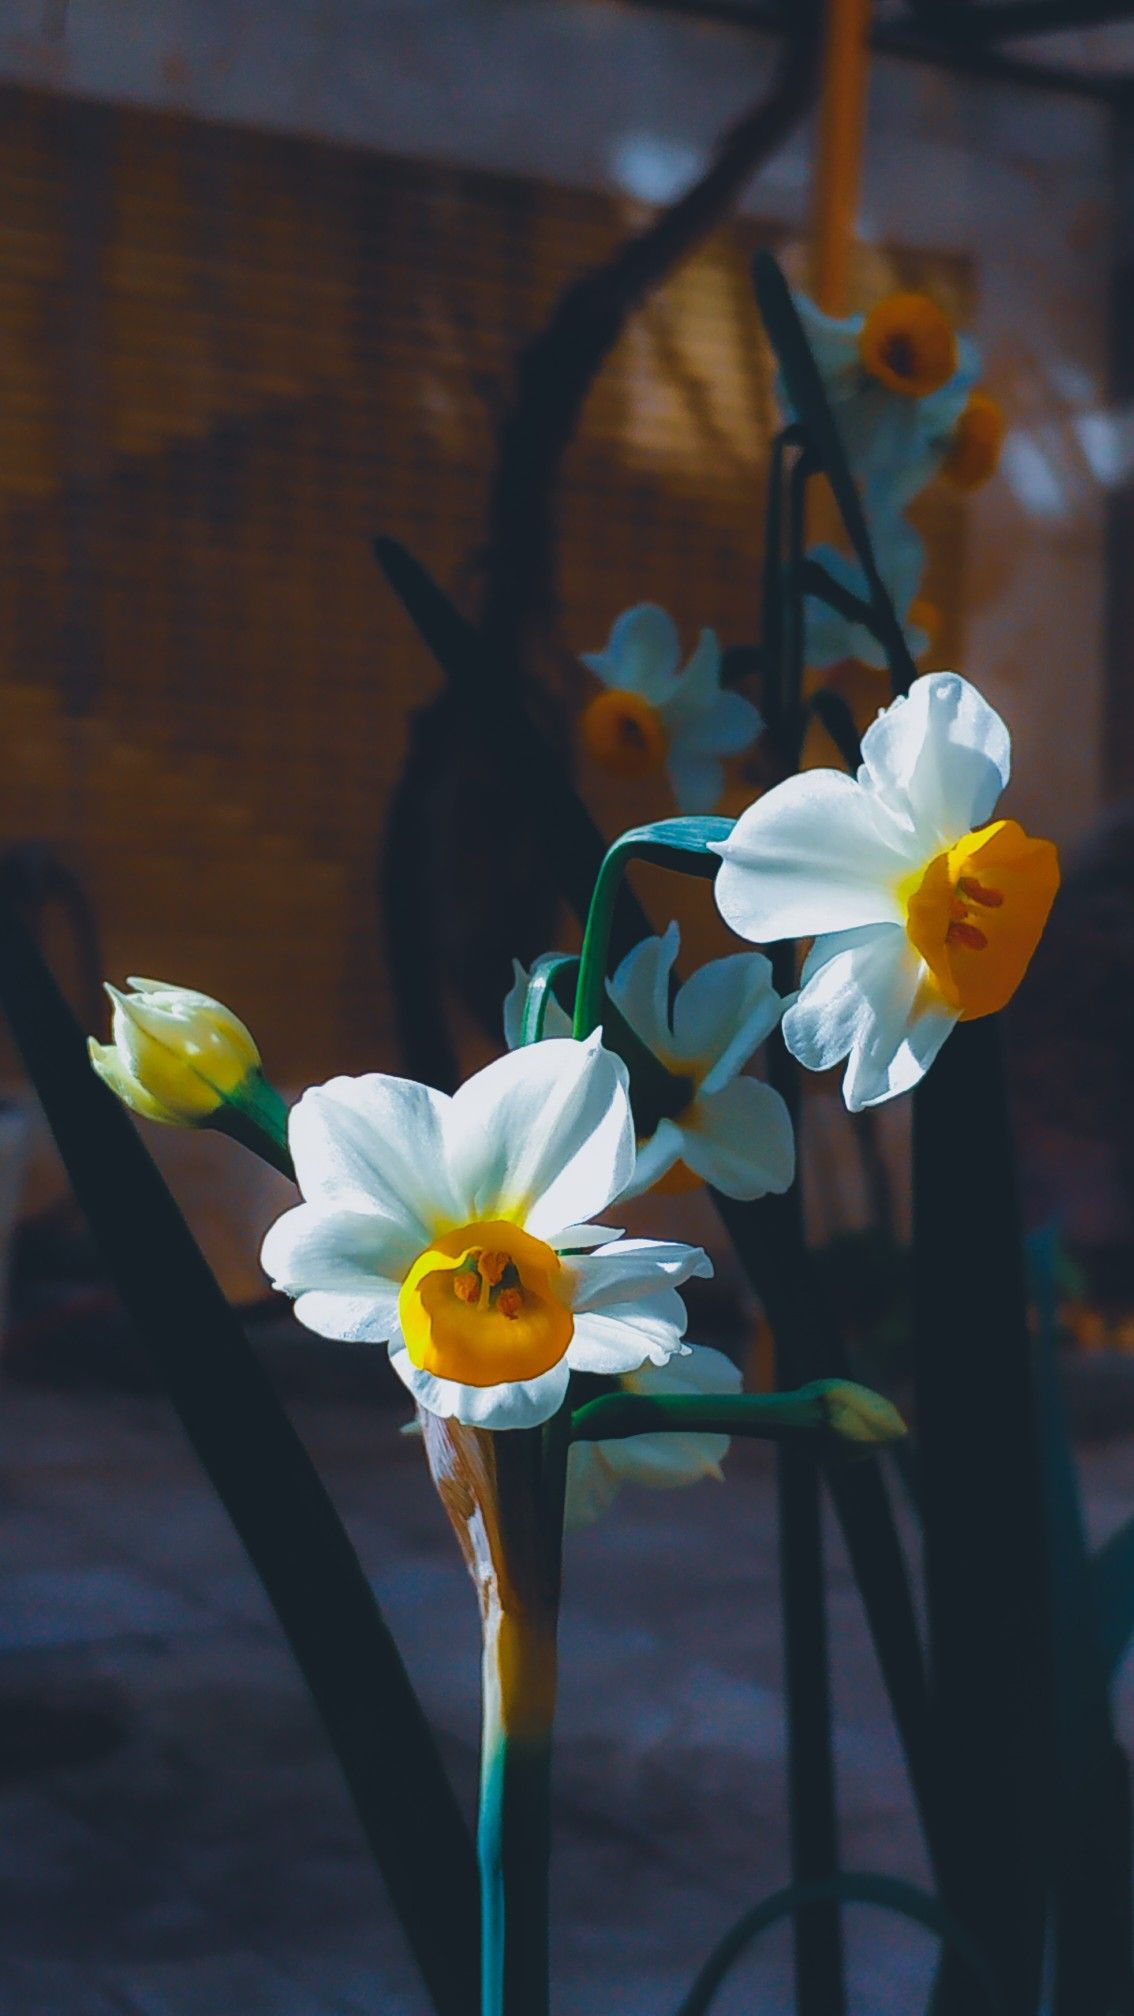 Narcissus flower Narcissus flower, Flowers photography